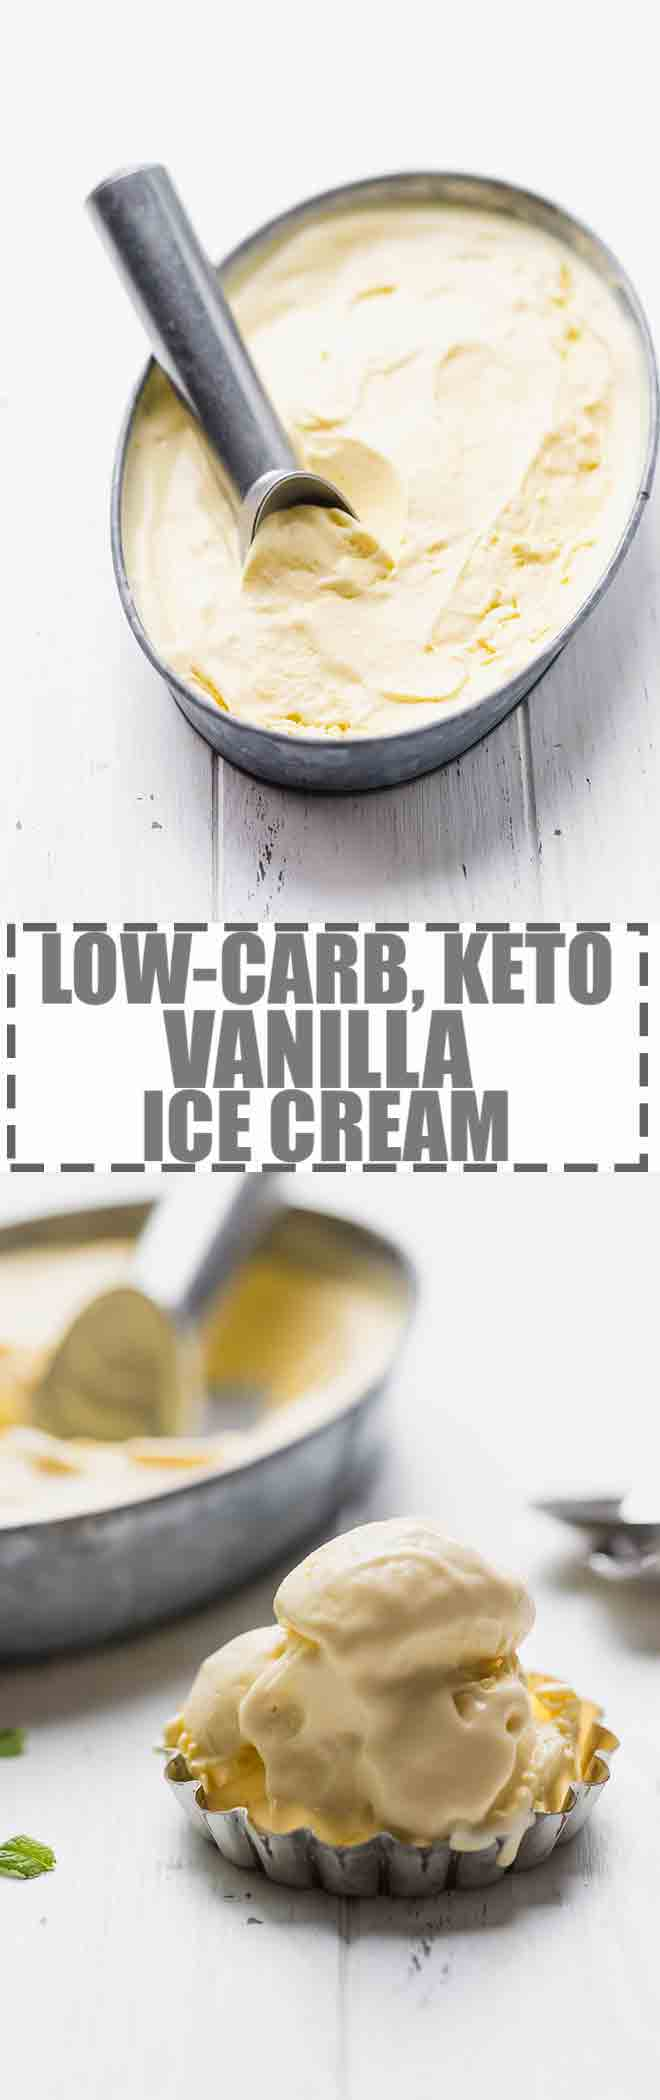 Low-Carb, Keto Ice Cream Recipe - custard based vanilla ice cream, made with a few simple ingredients and churned in an ice cream maker. Perfect for summer. Sugar and gluten-free. #keto #lowcarb #ketogenic #icecream